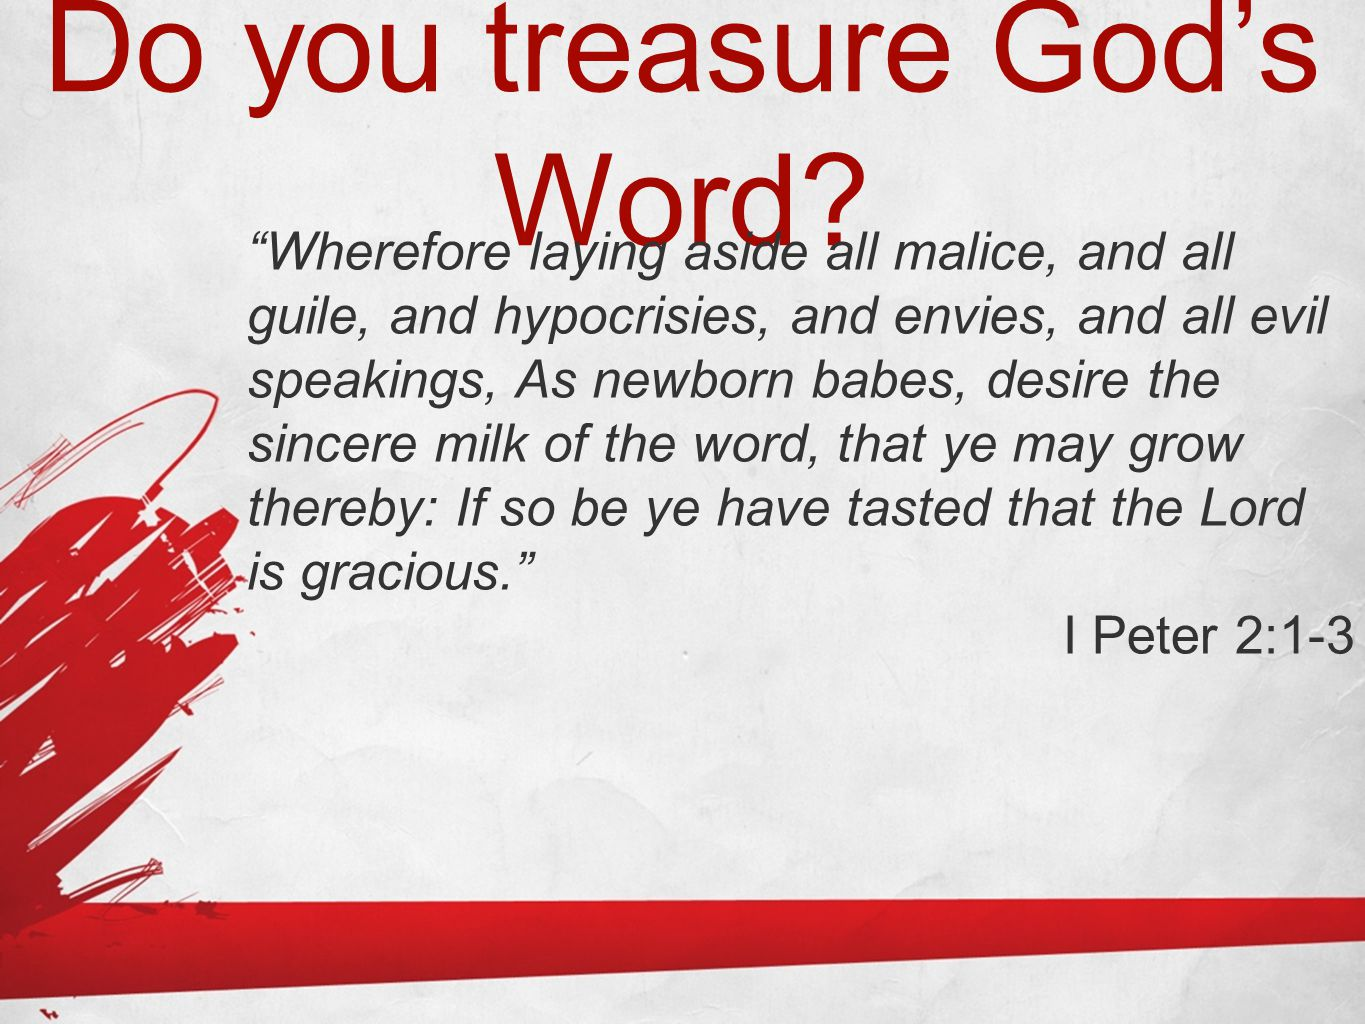 """Do you treasure God's Word? """"Wherefore laying aside all malice, and all guile, and hypocrisies, and envies, and all evil speakings, As newborn babes,"""